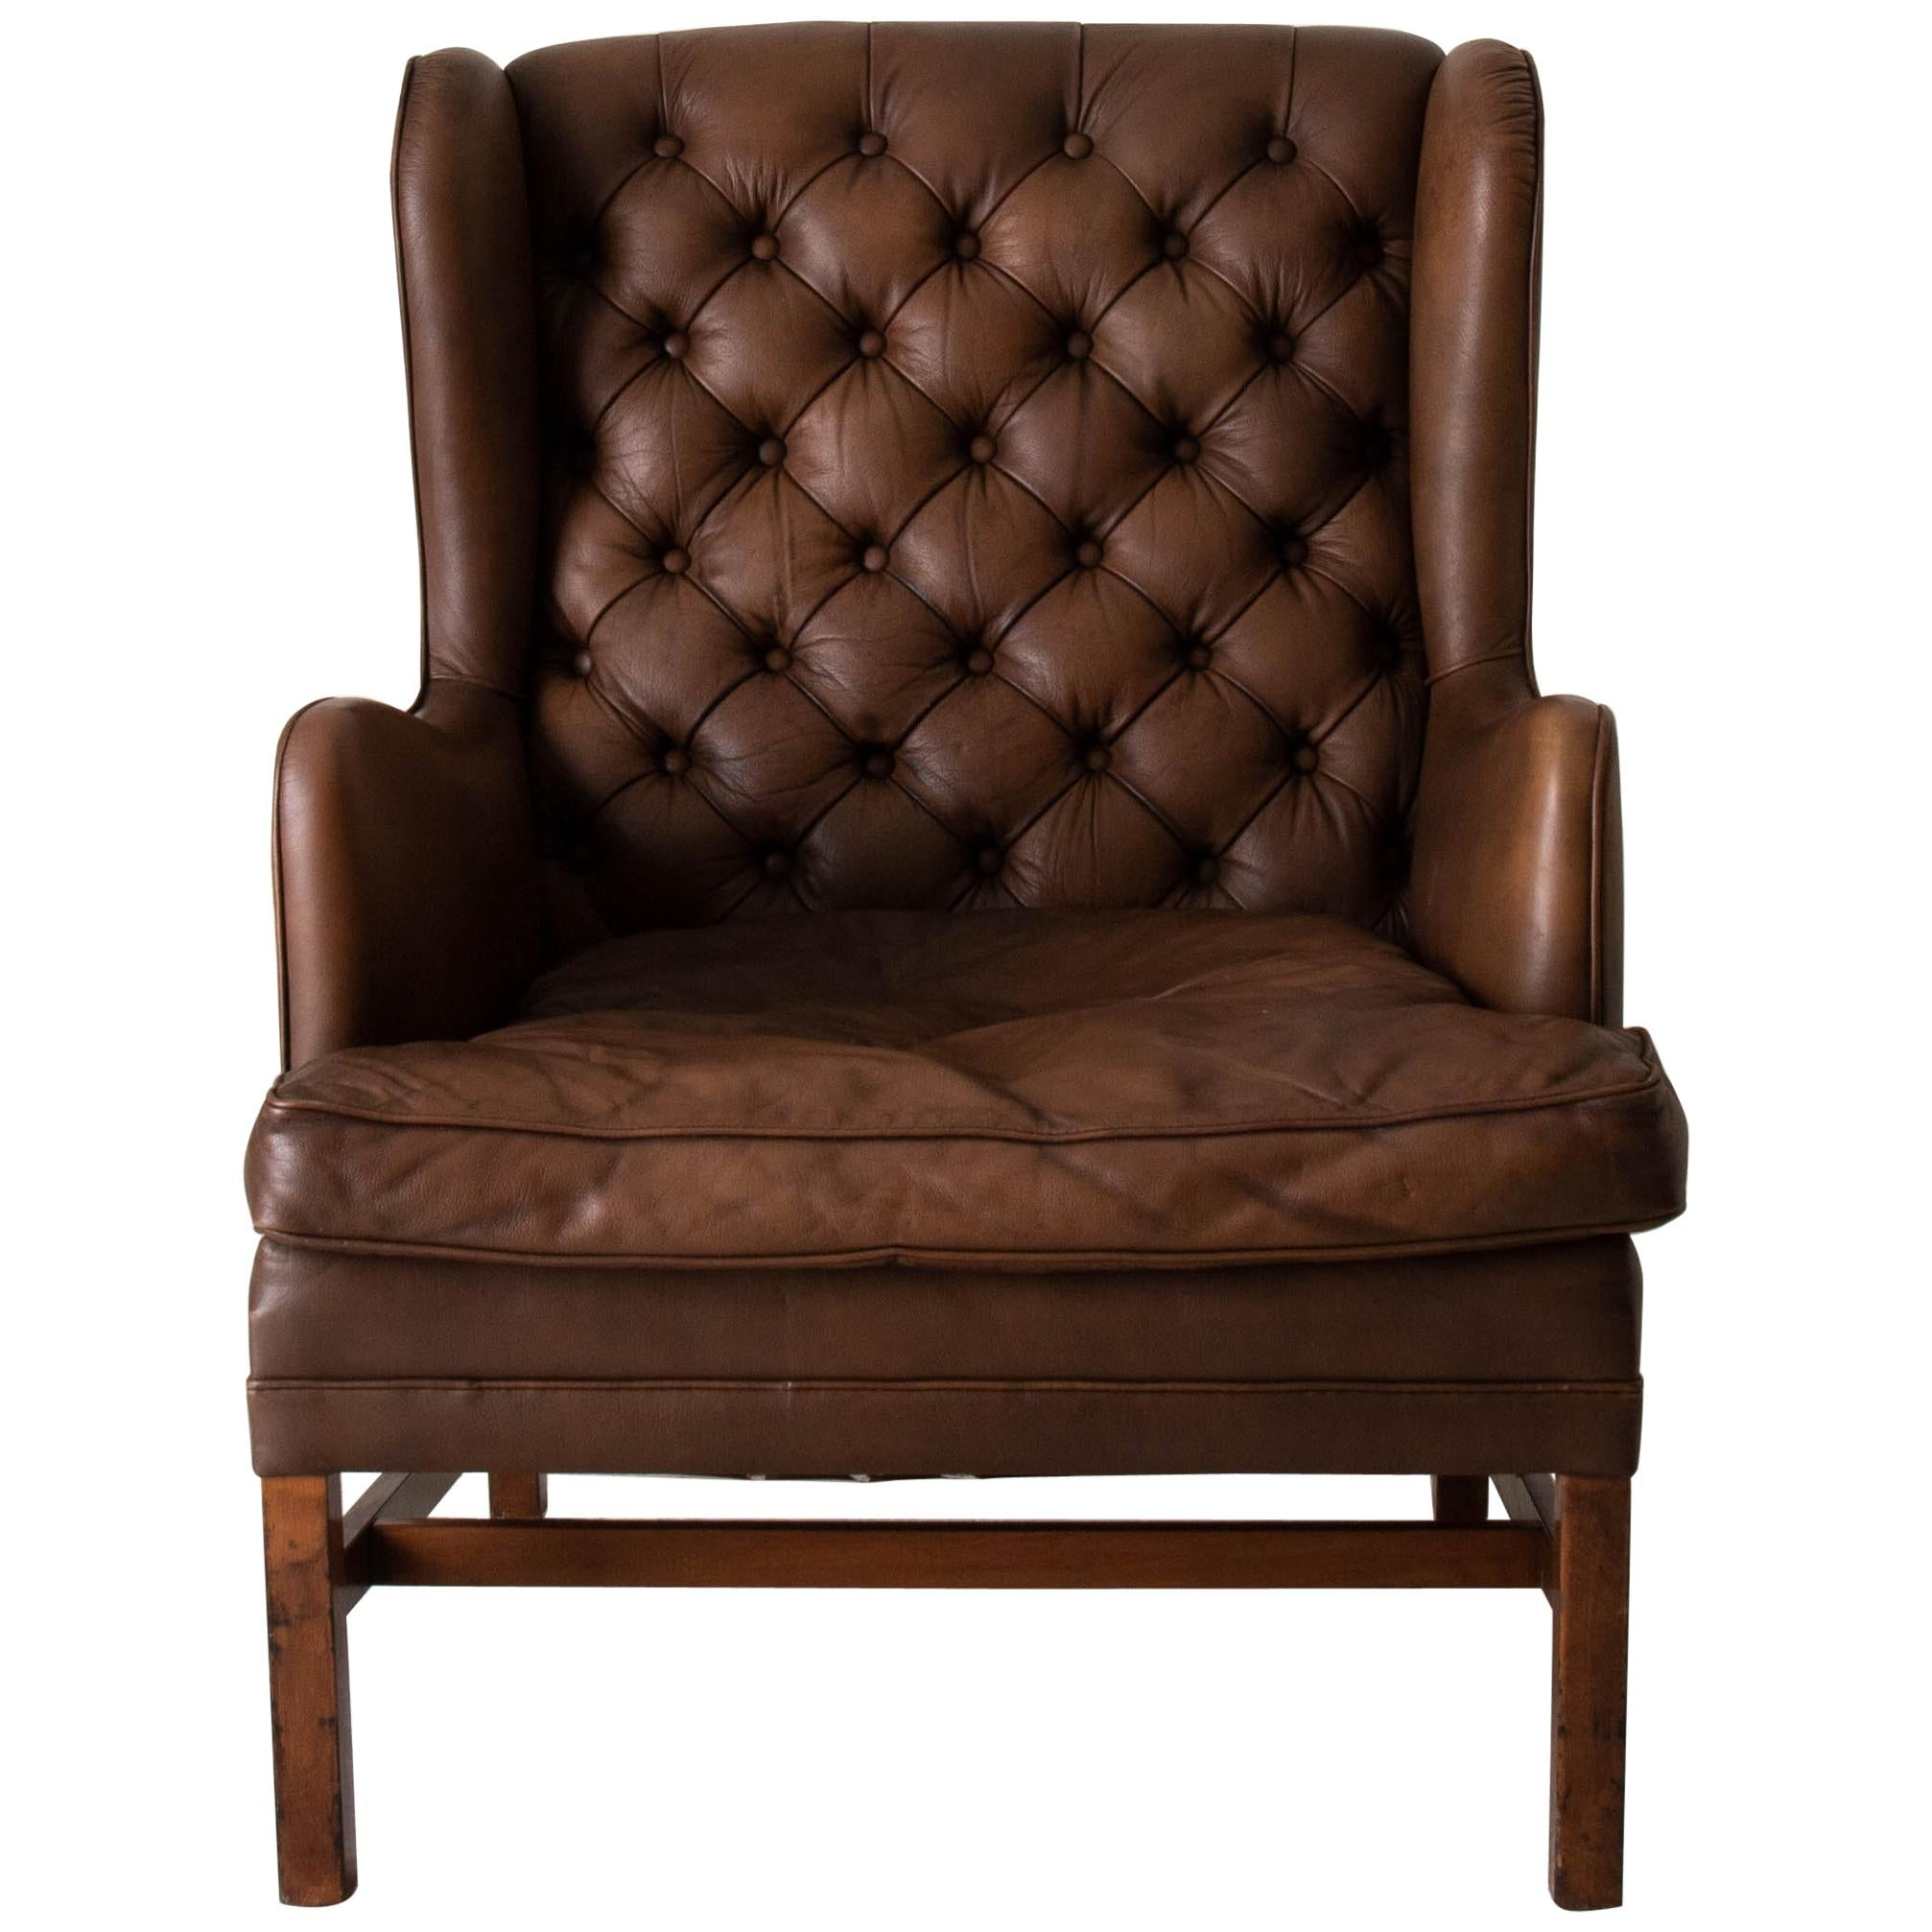 Chair Wingback Swedish 20th Century Brown Tufted, Sweden